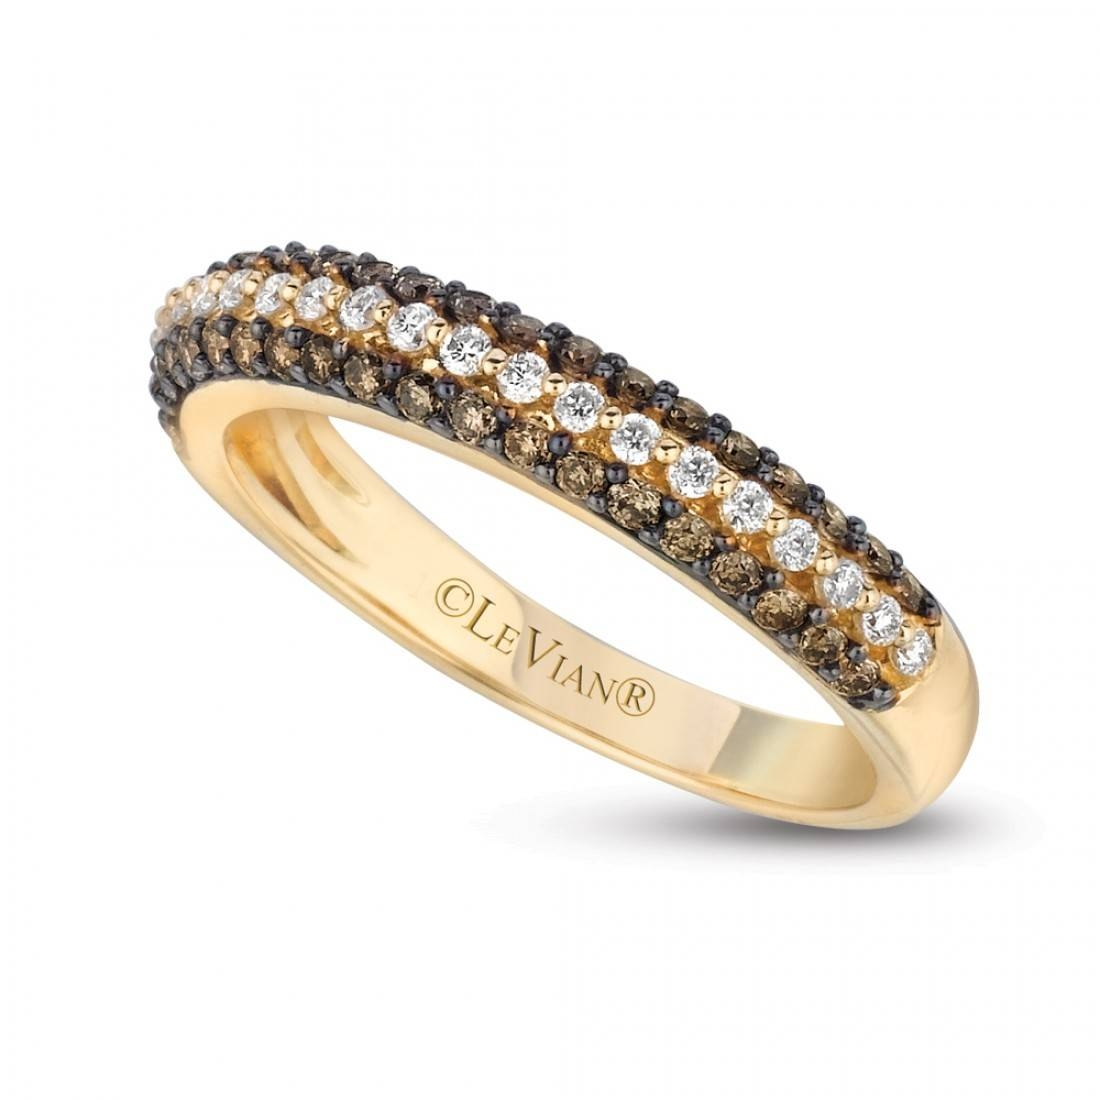 Le Vian 14K Yellow Gold Chocolate Pave Diamond Wedding Band In Le Vian Wedding Bands (Gallery 9 of 15)